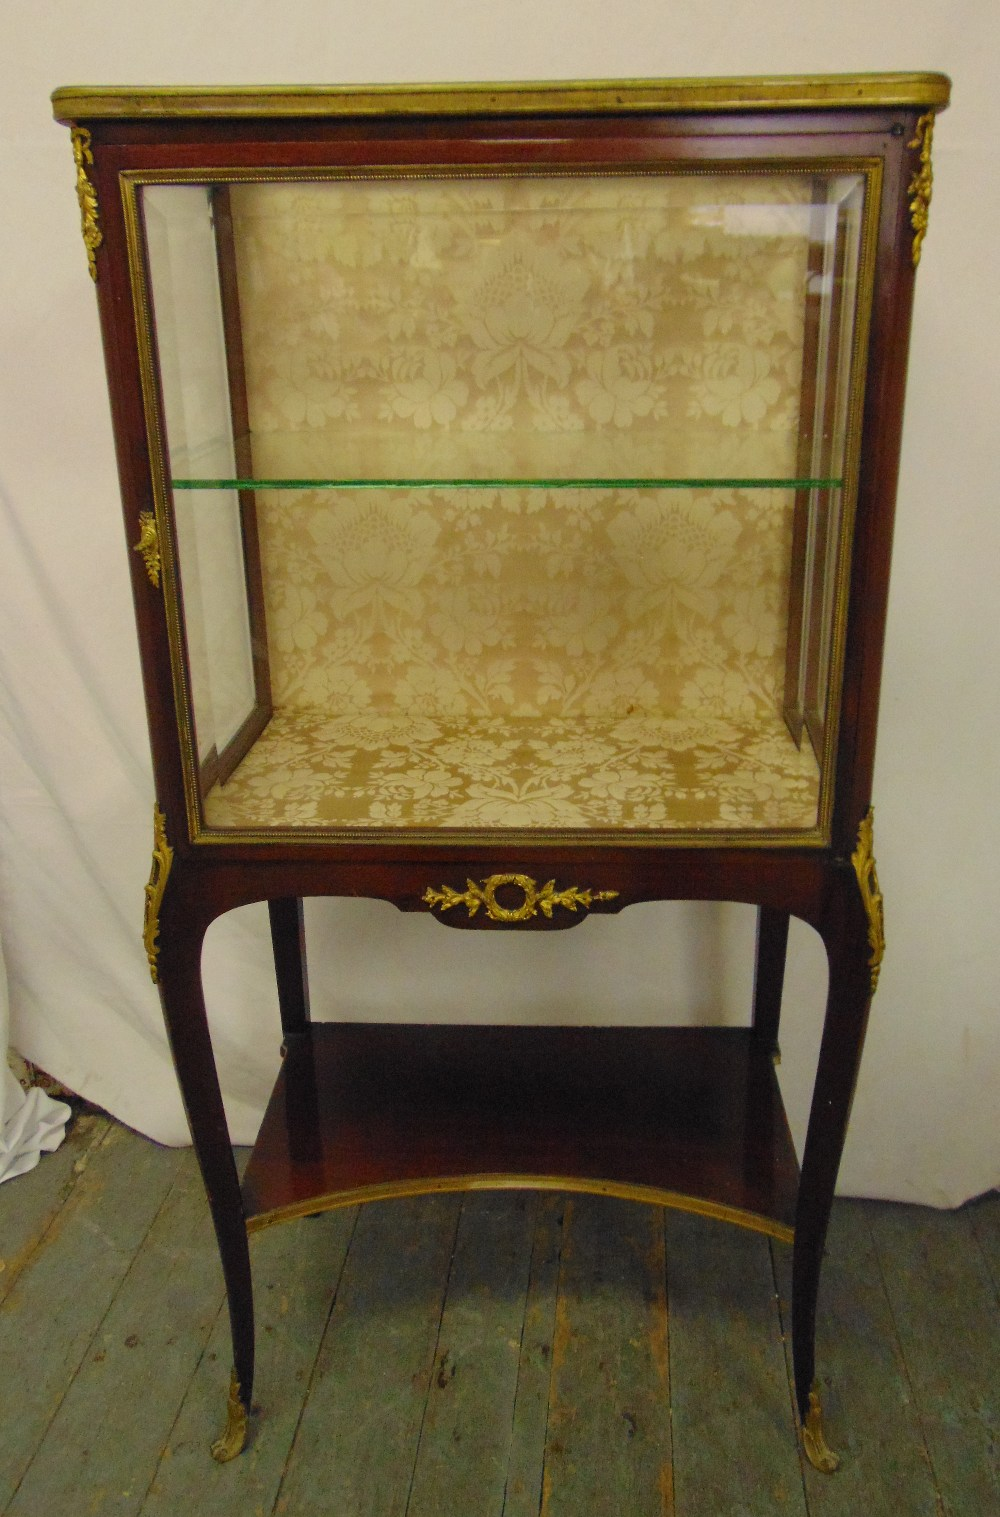 Lot 9 - A French style rectangular glazed display case with gilt metal mounts, on cabriole legs, retailed by